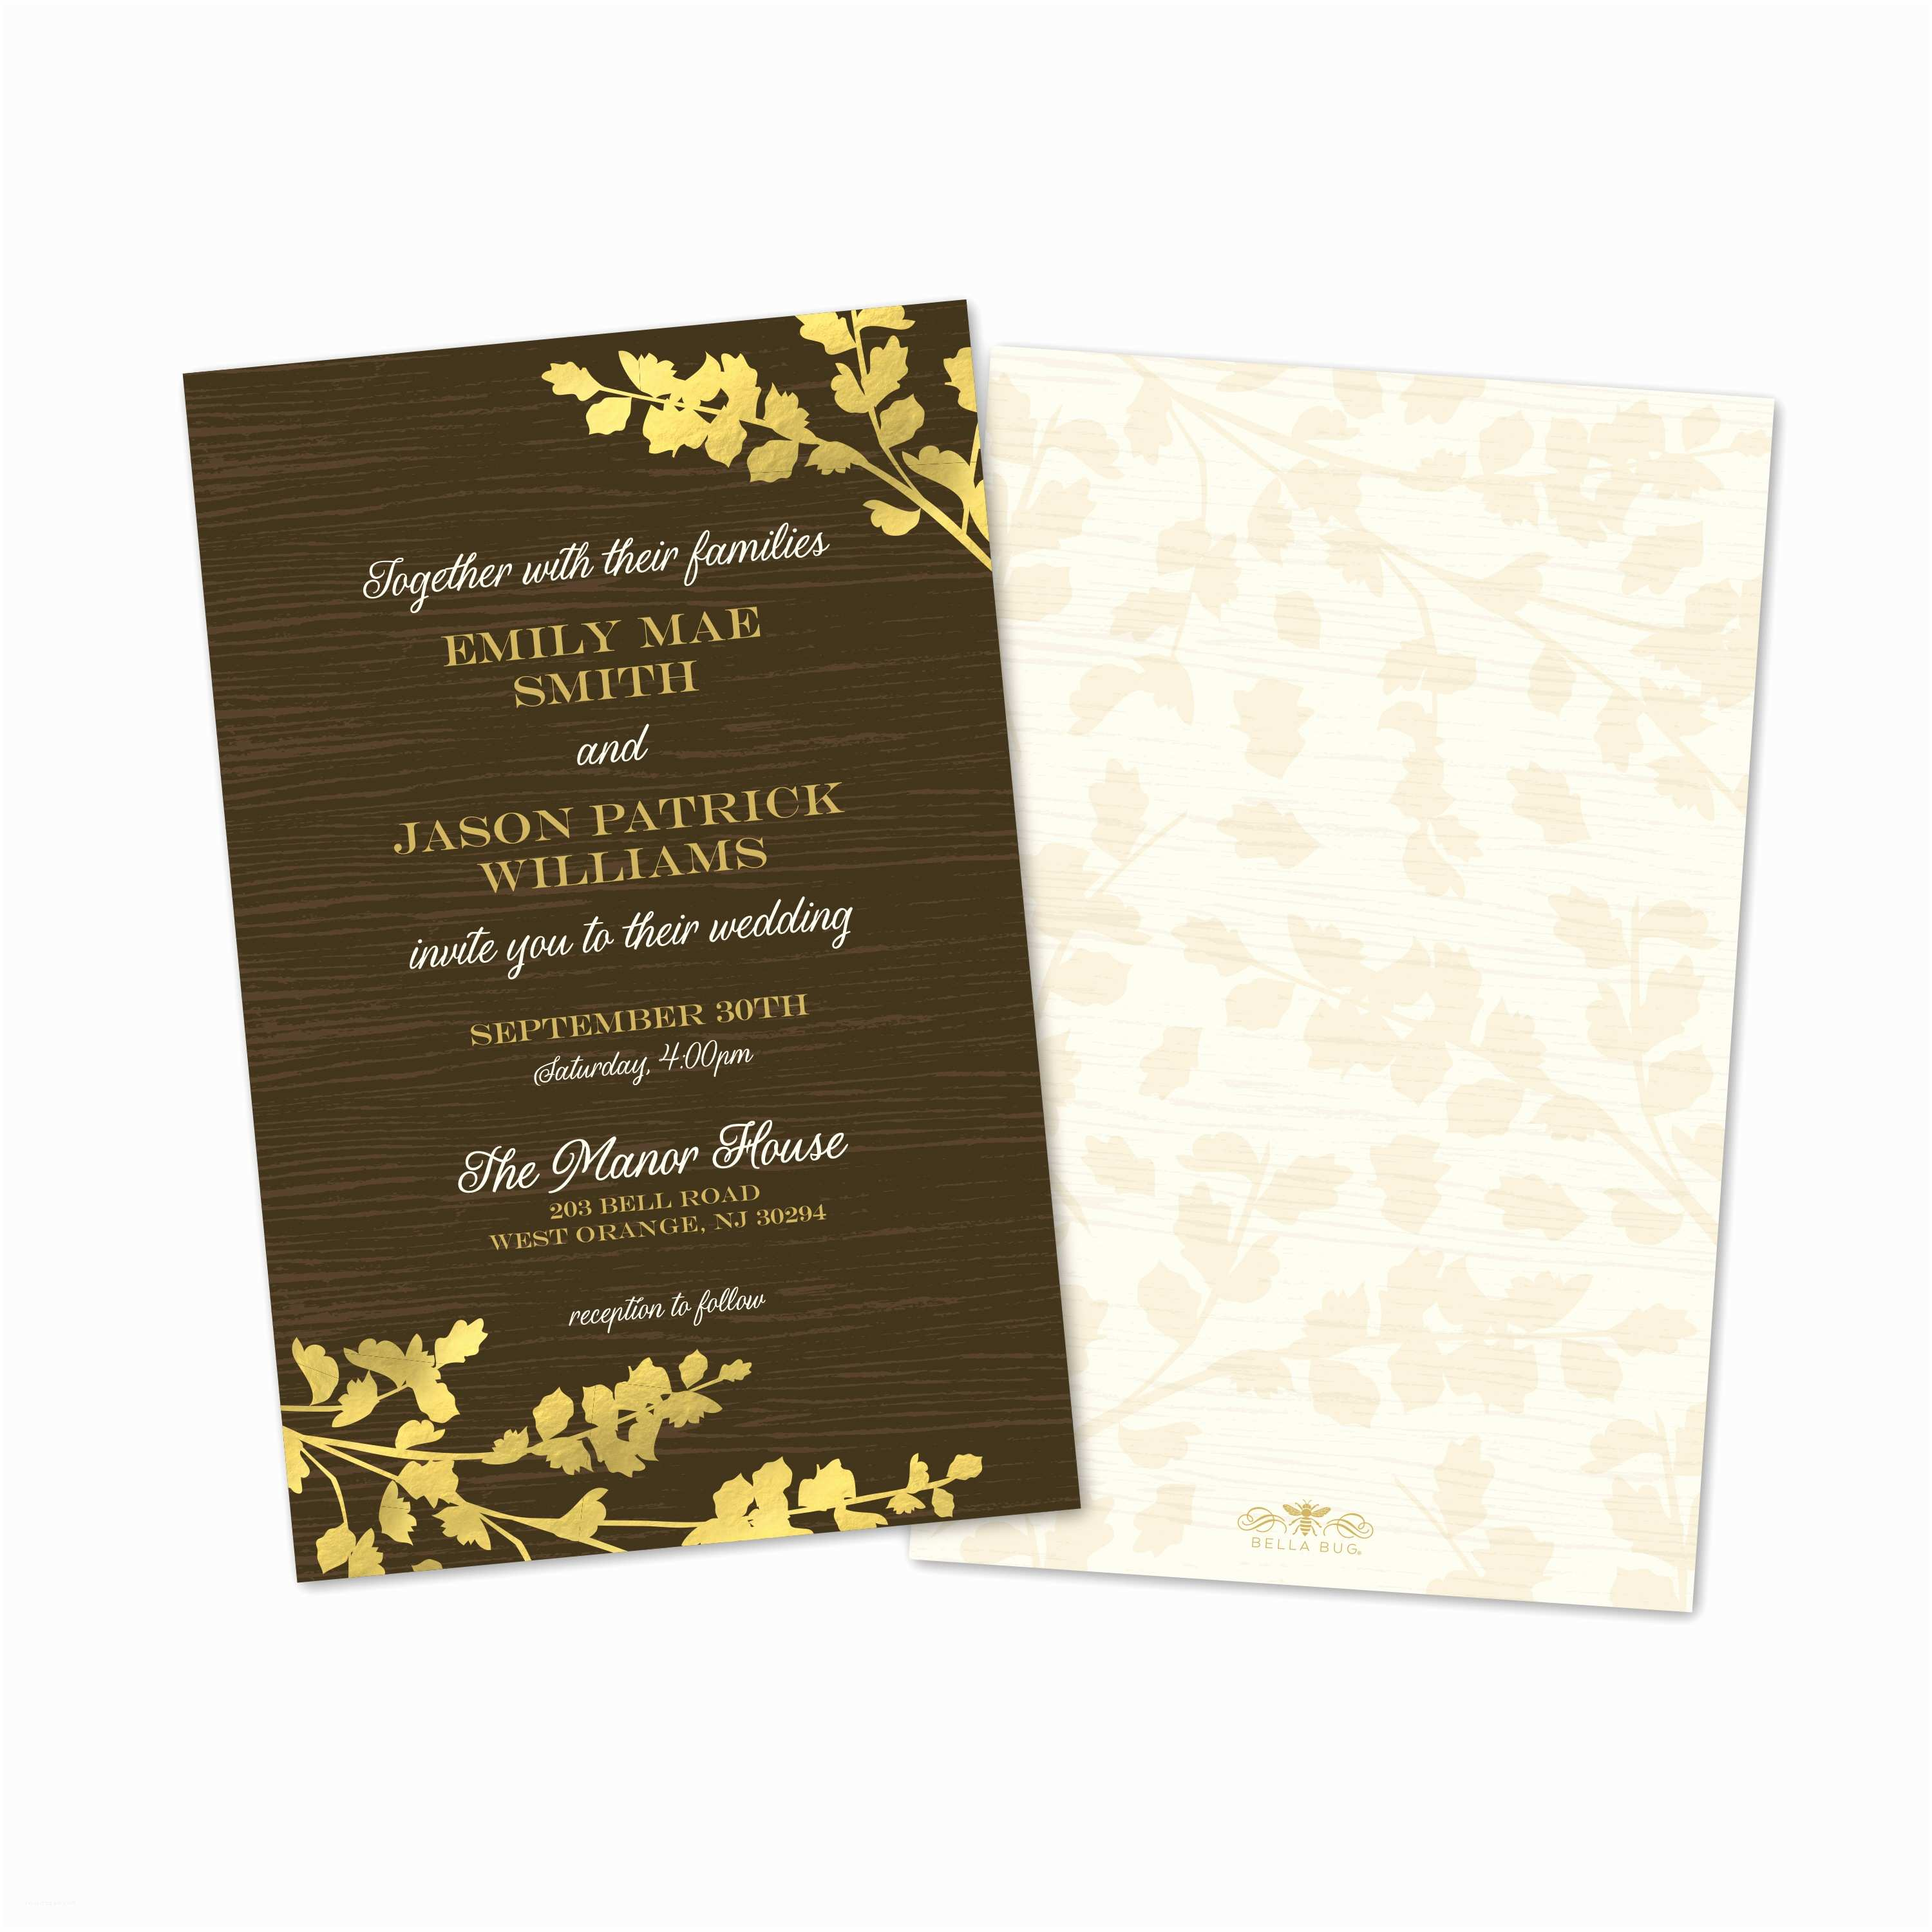 Custom Wedding Invitations Golden Leaves Personalized Wedding Invitations with